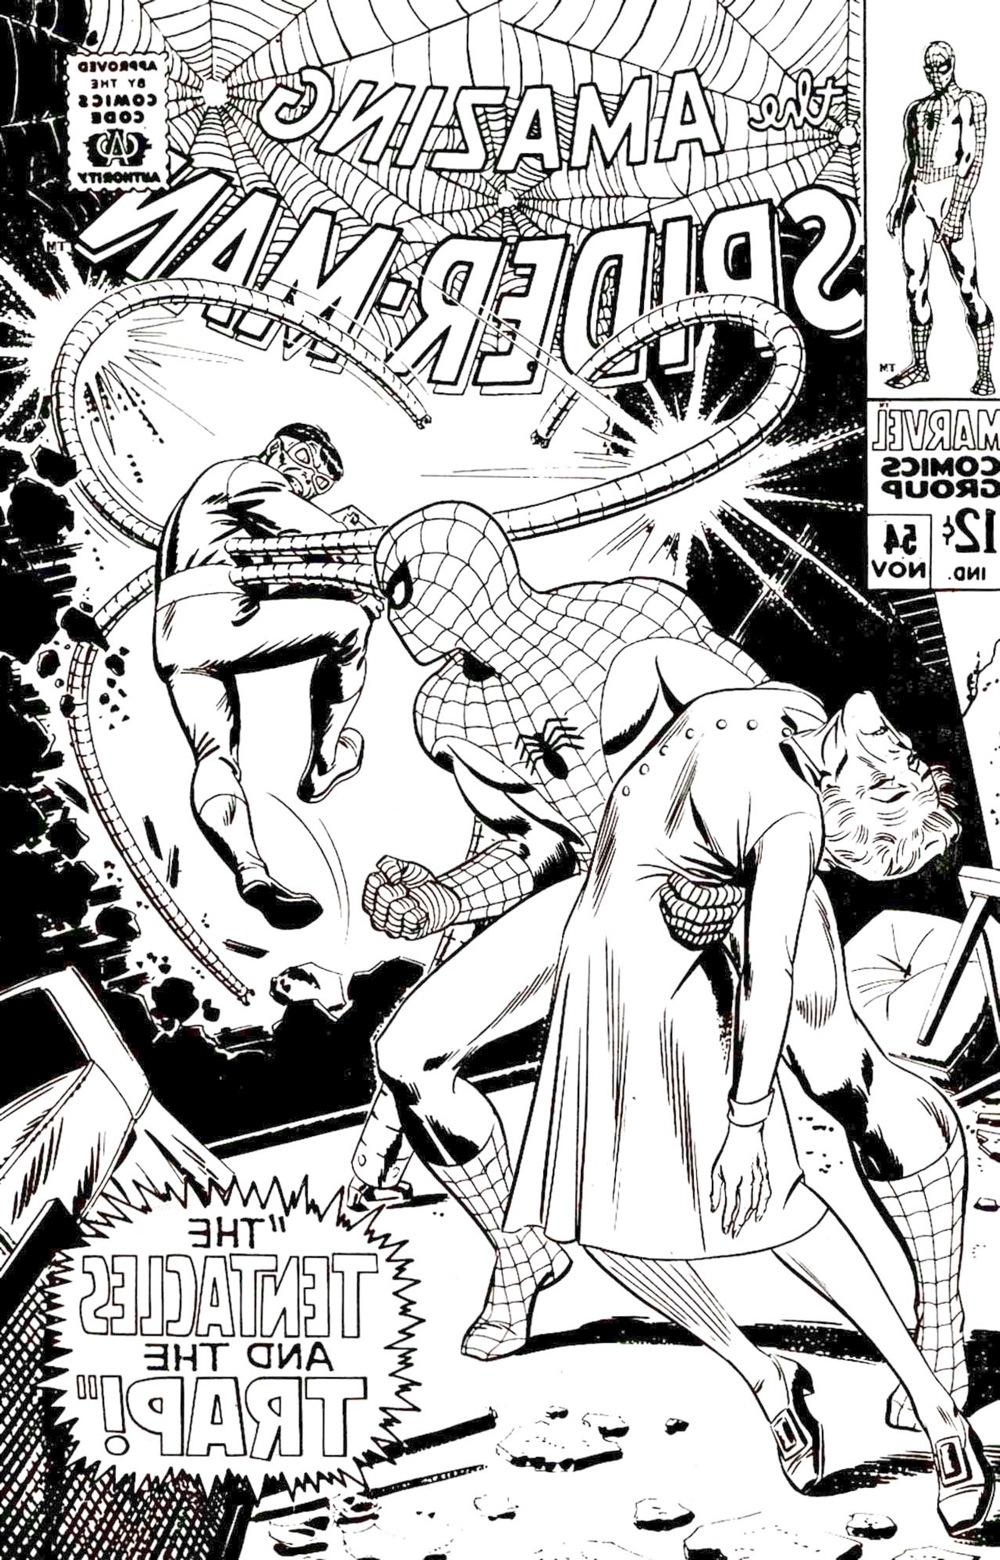 The amazing spider man 54